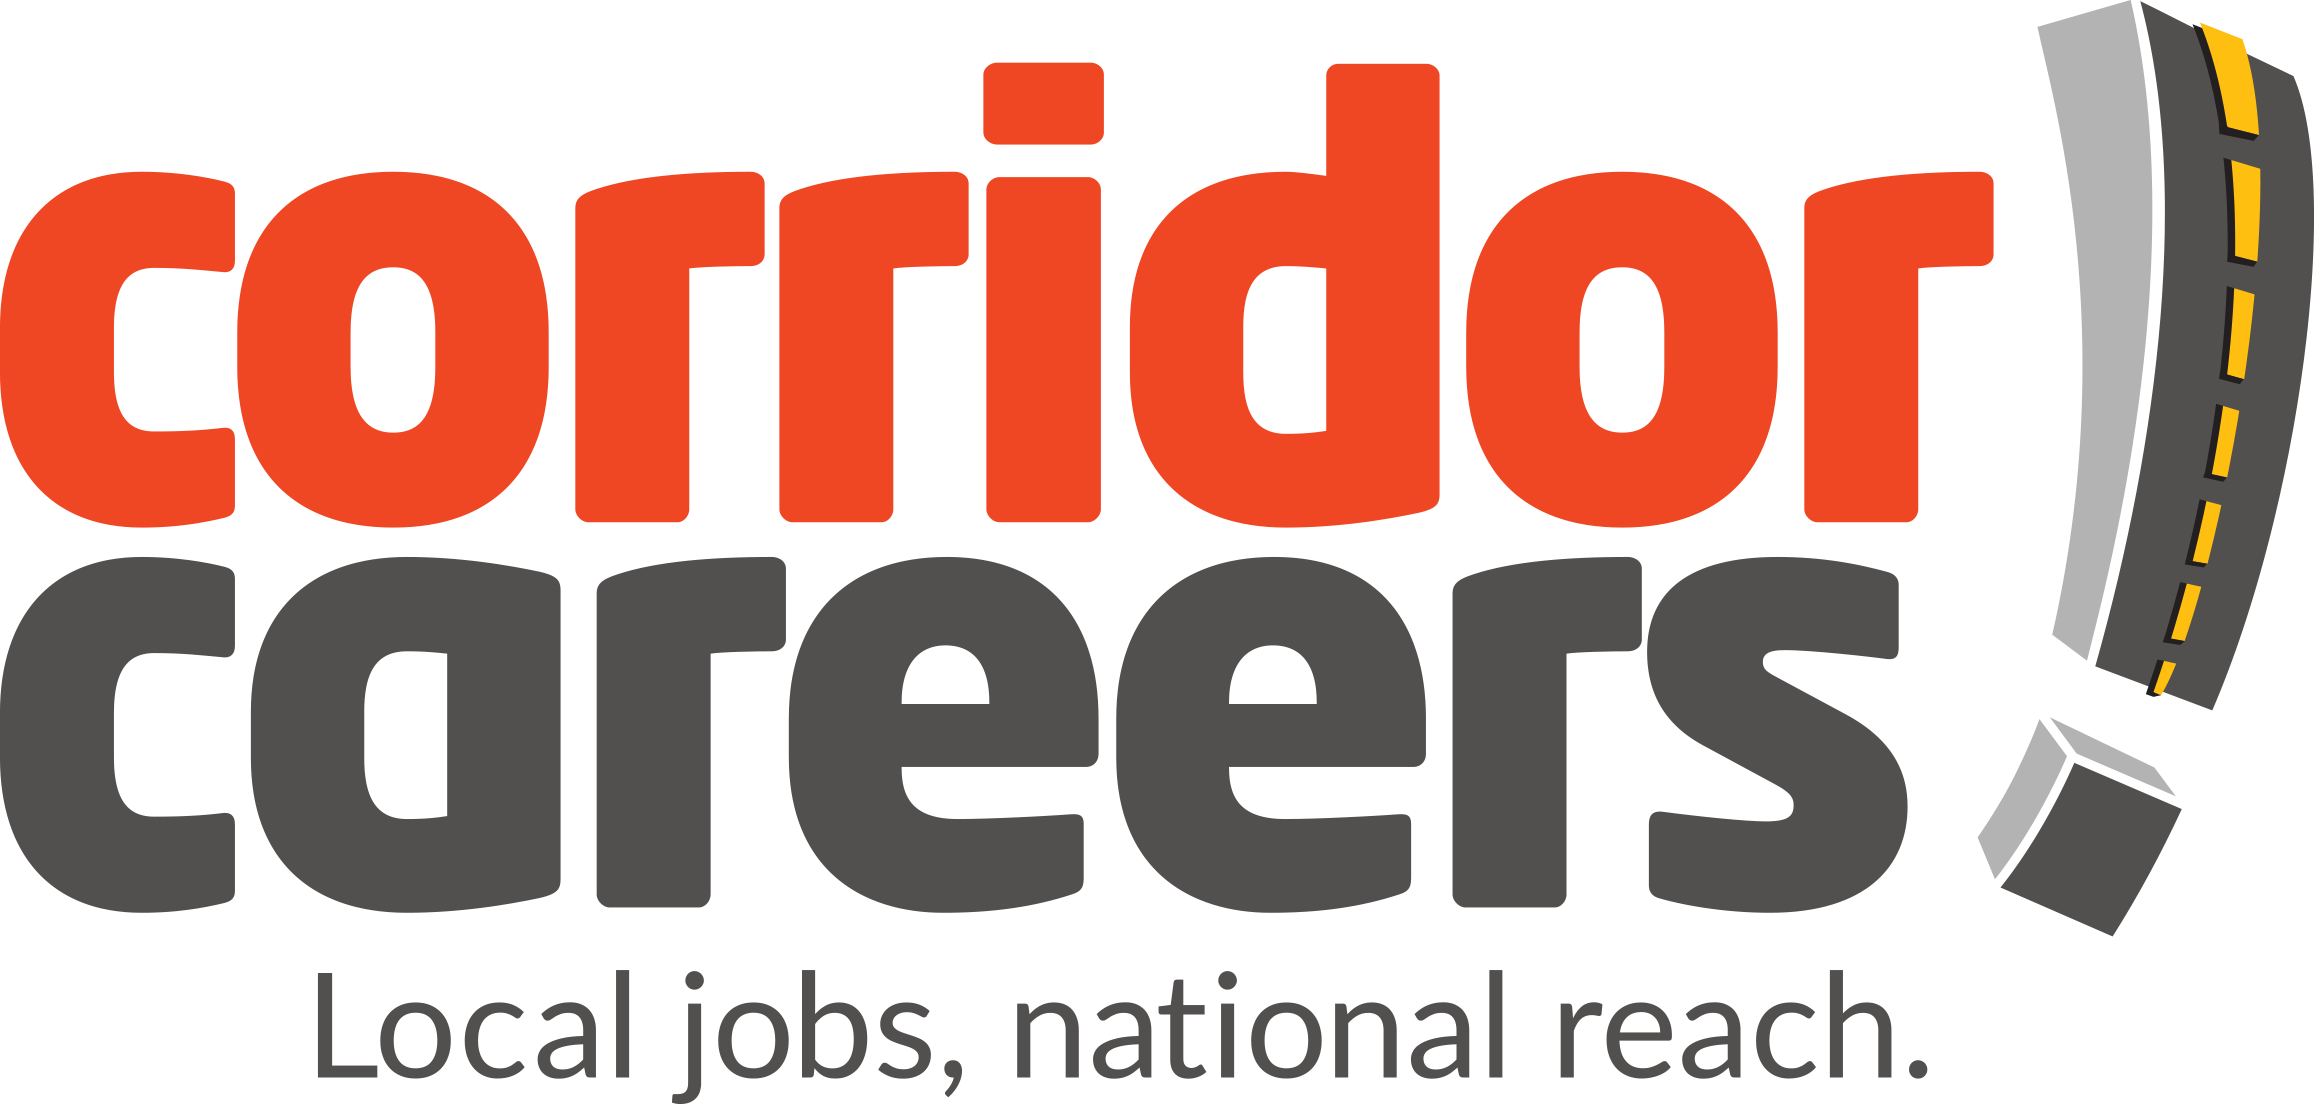 Corridor Careers   Job Listings In Cedar Rapids And Iowa City